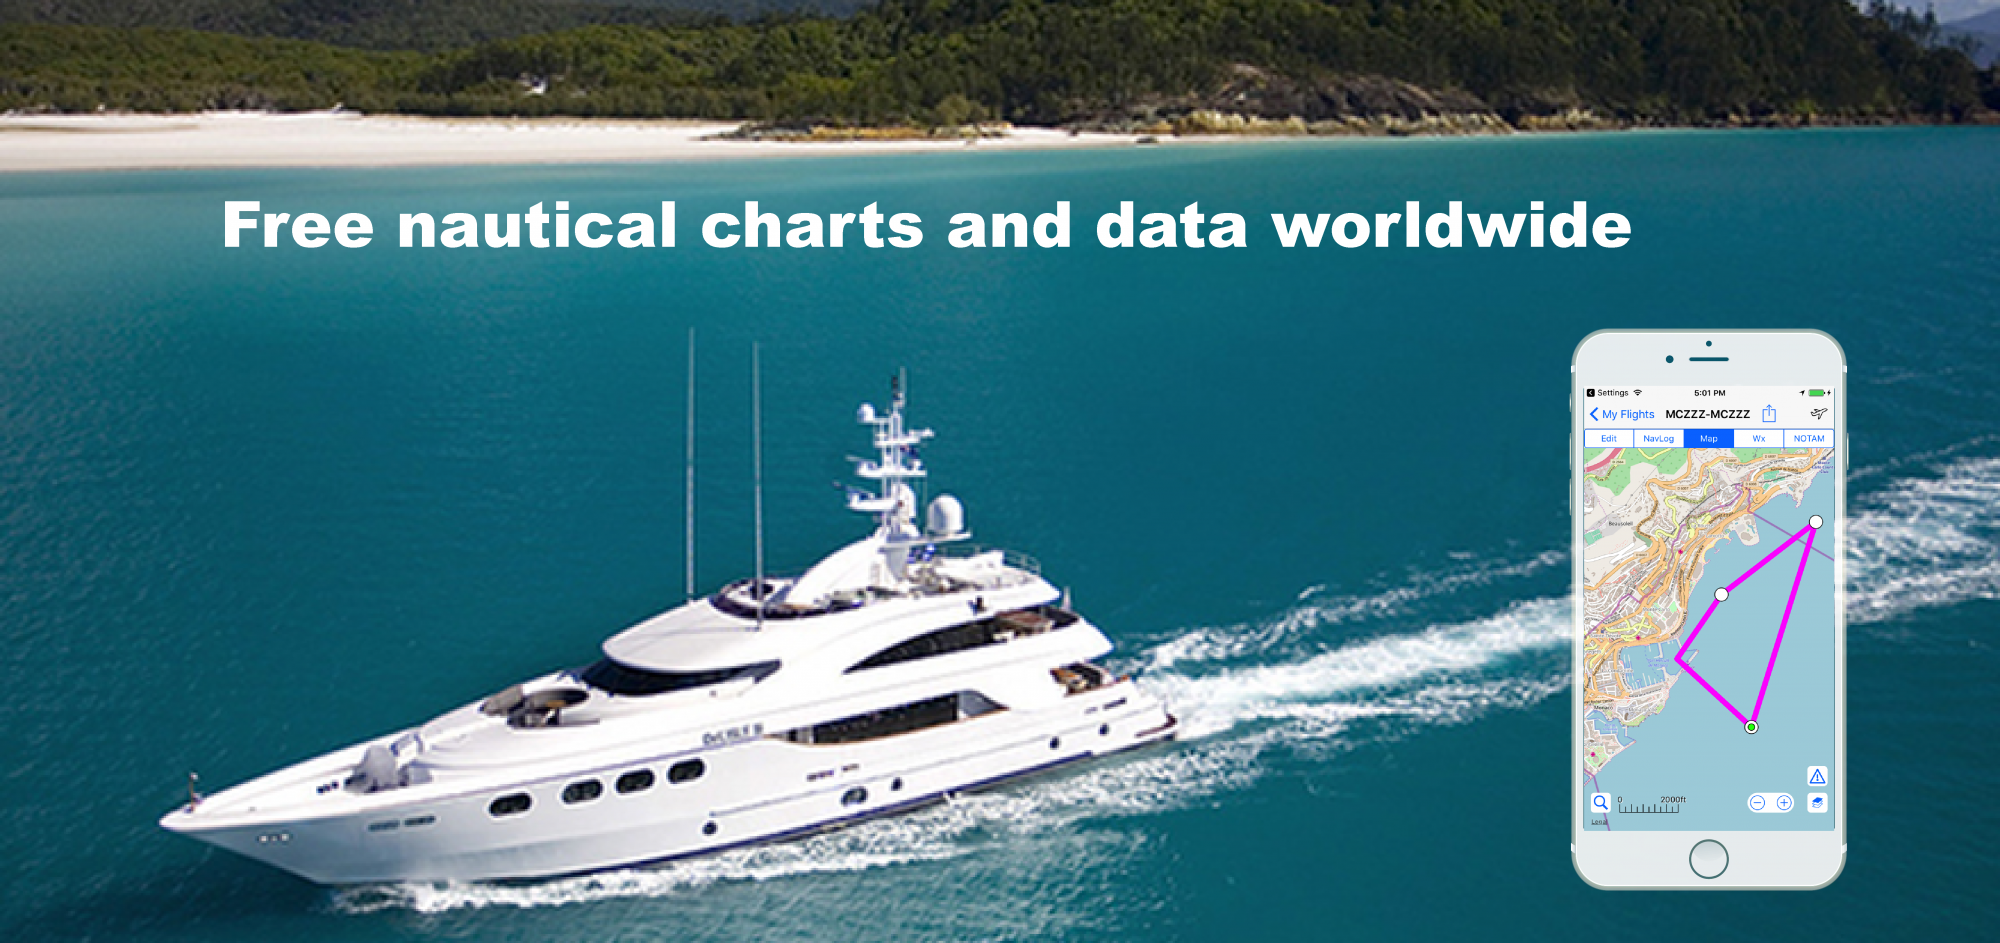 Free nautical charts and data worldwide